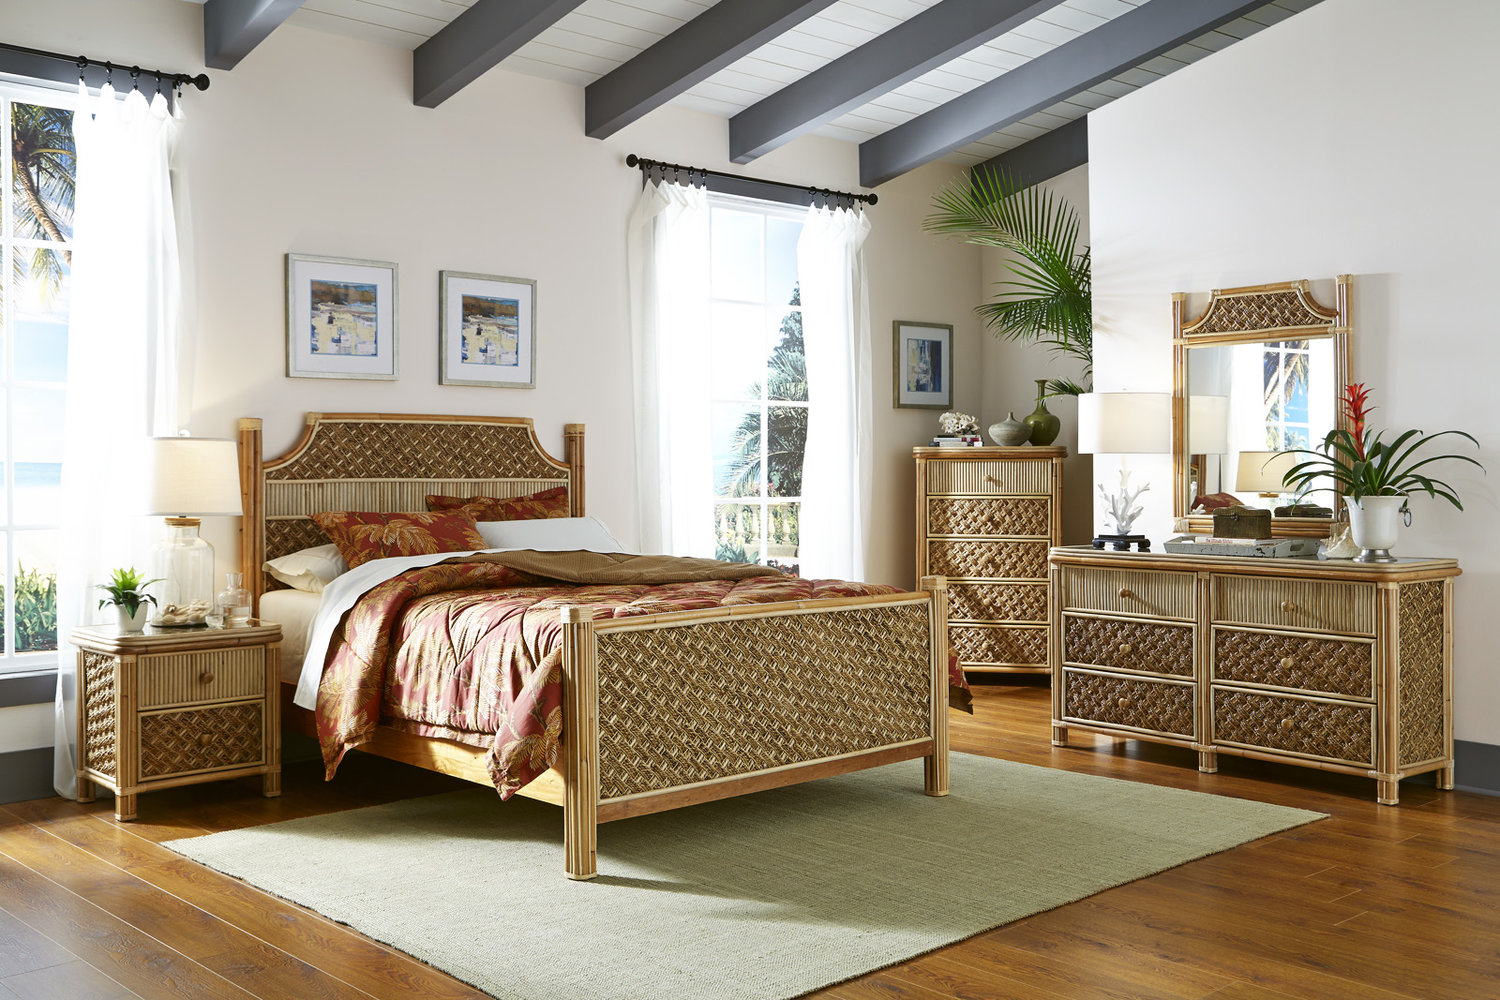 Spice Islands Wicker - Quality Contemporary Wicker Furniture